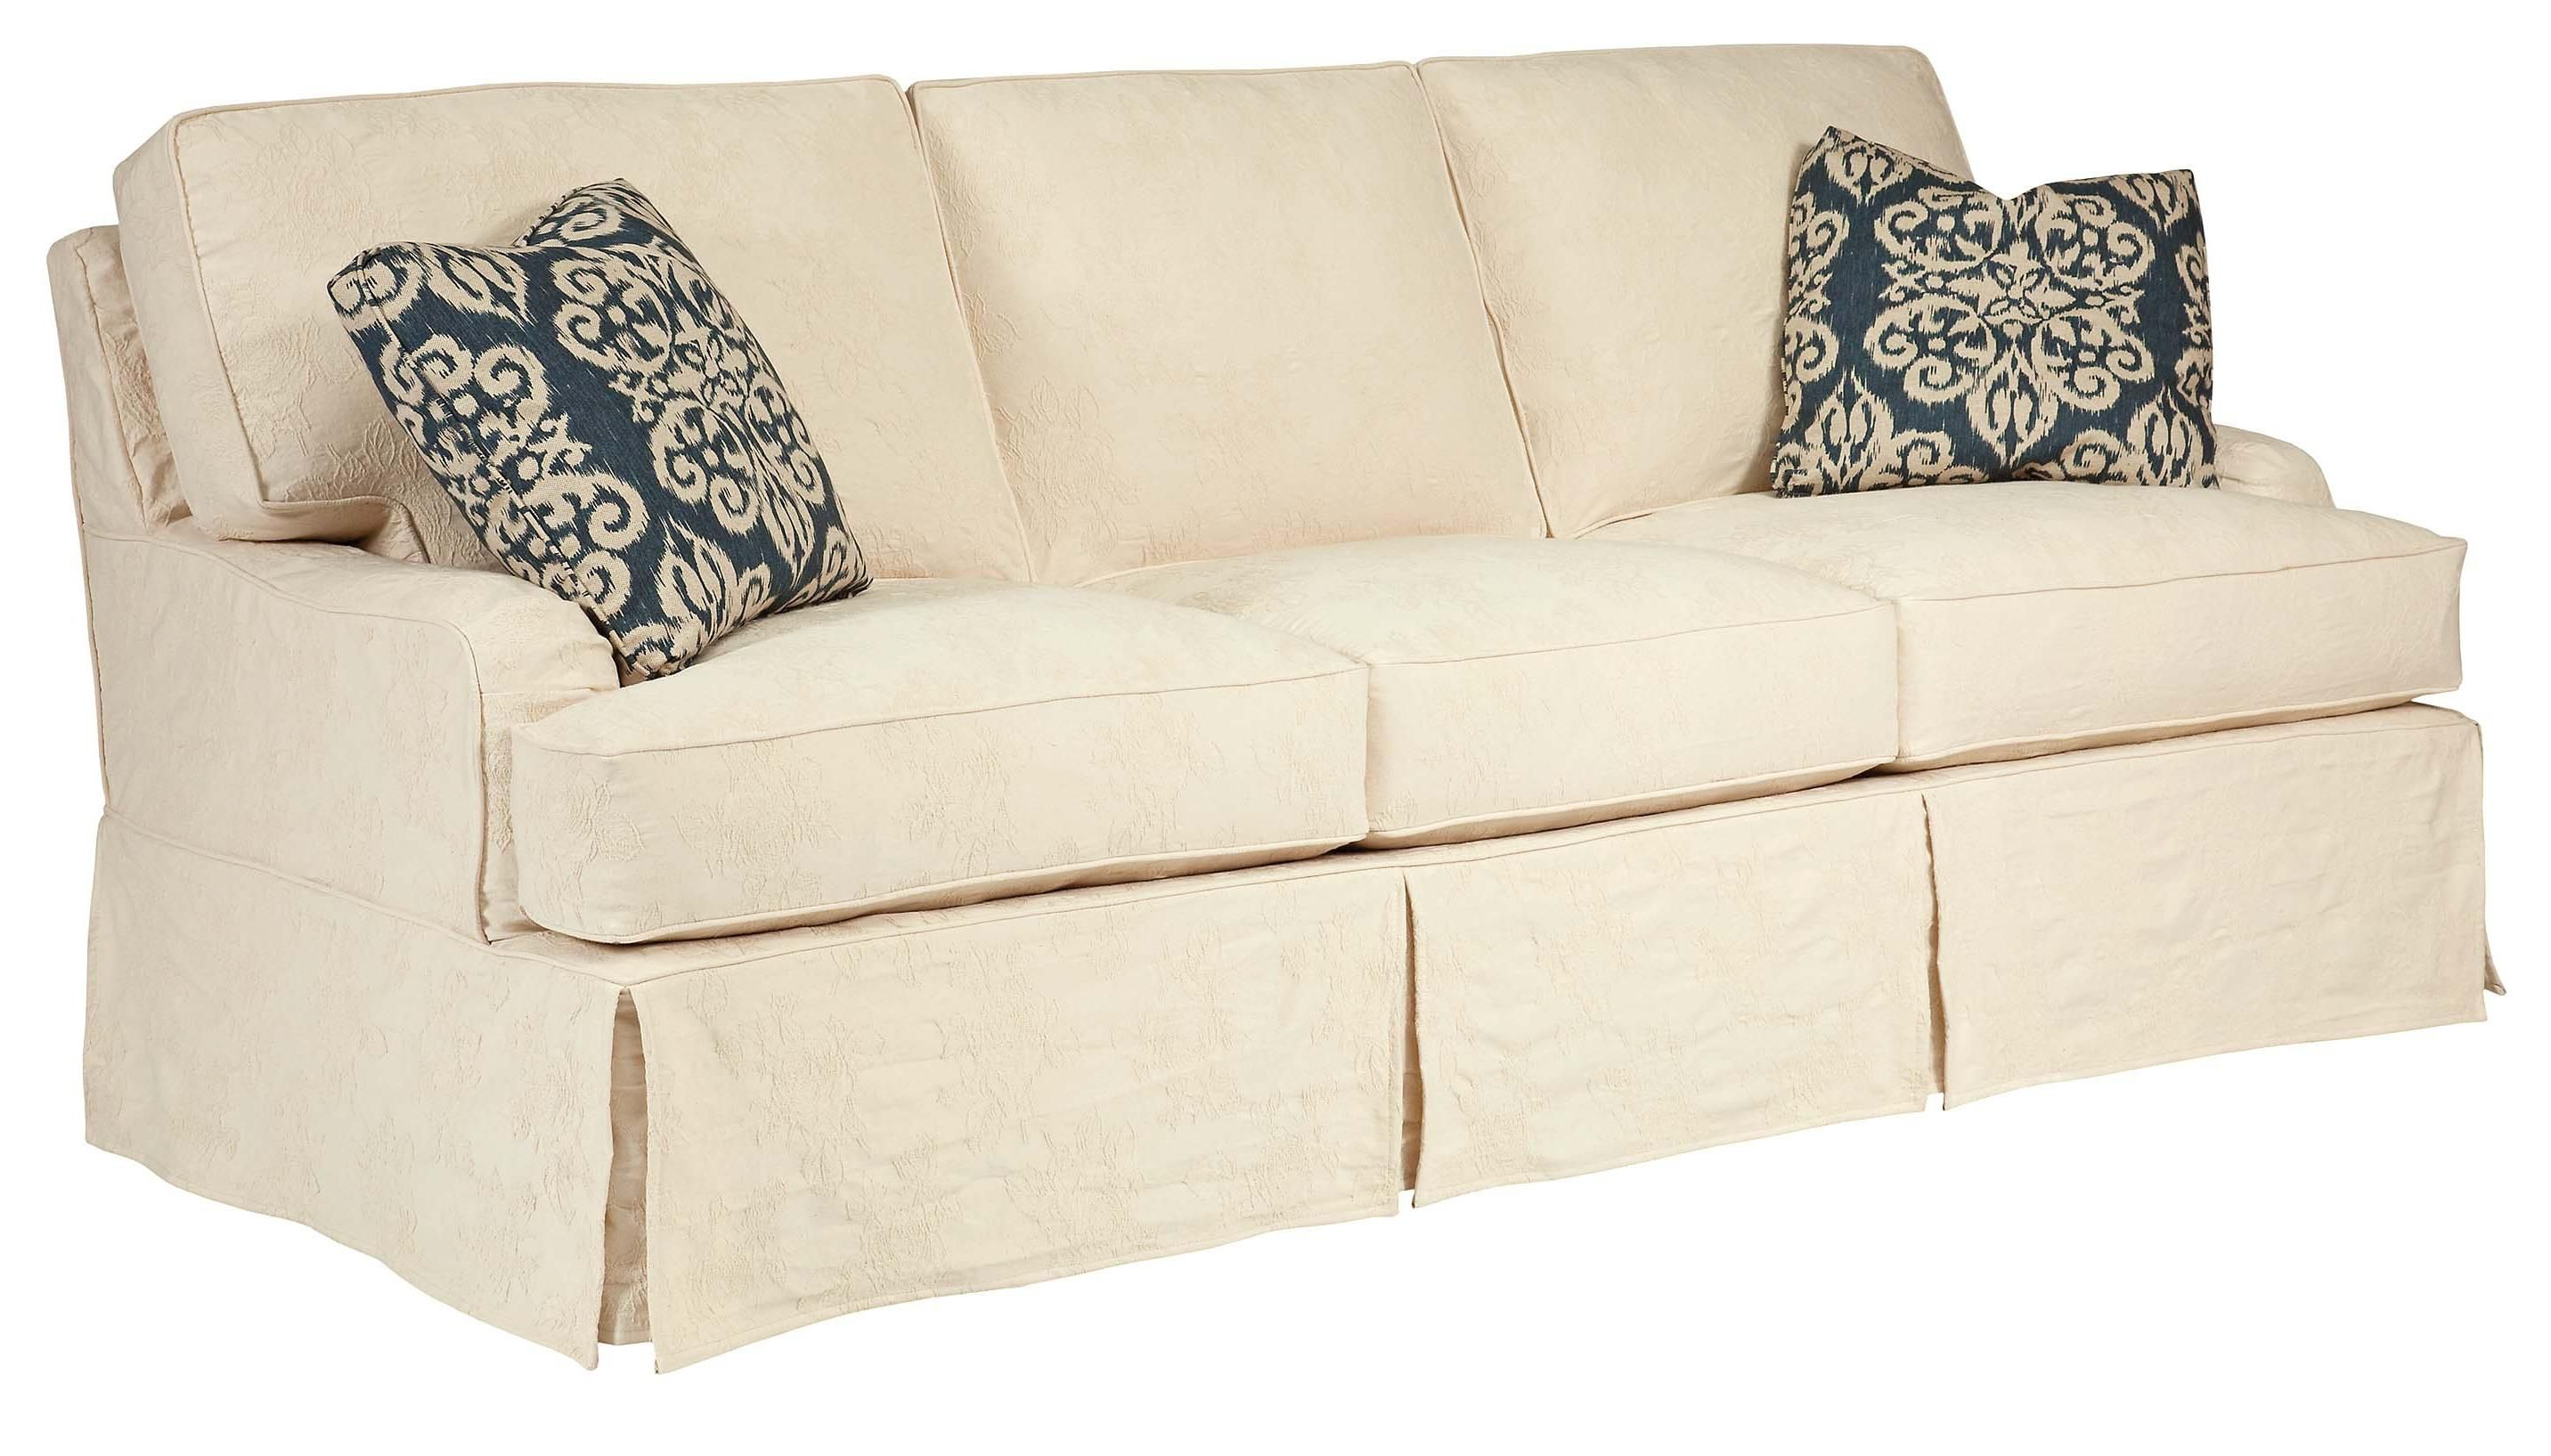 sofa piece home overstock today sure fit slipcover slipcovers free product cushion garden shipping t bouquet ballad